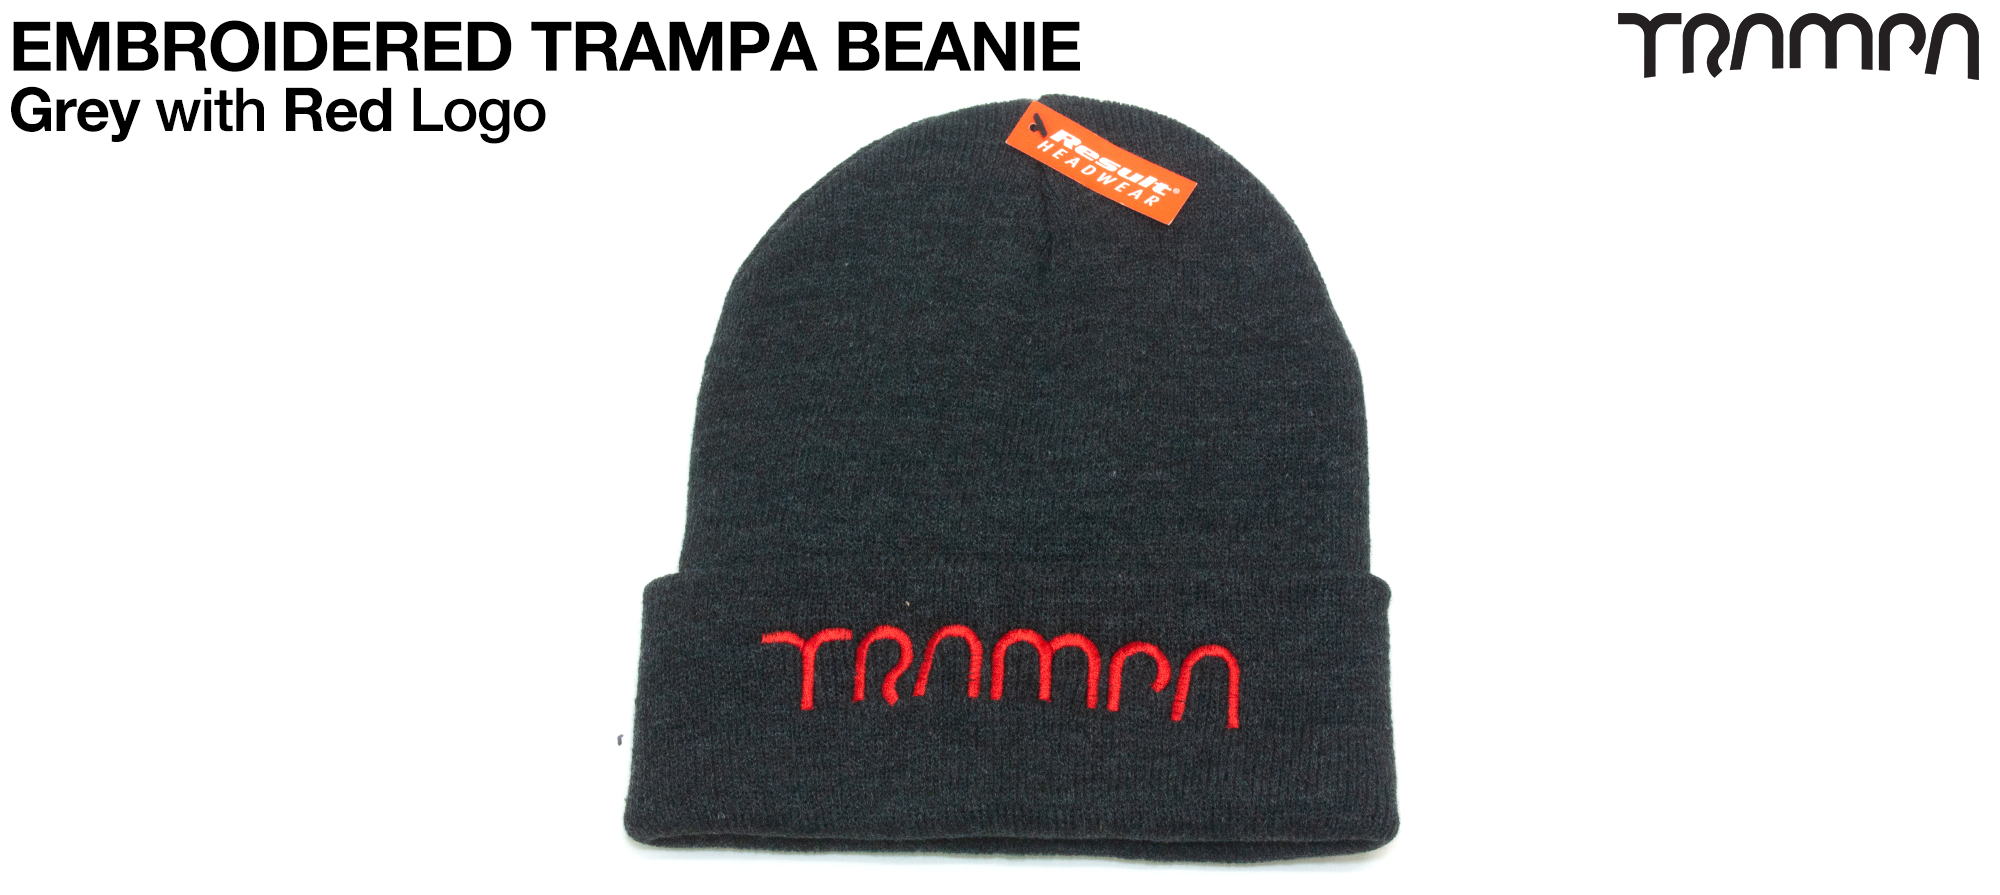 Grey Woolie hat with White TRAMPA logo